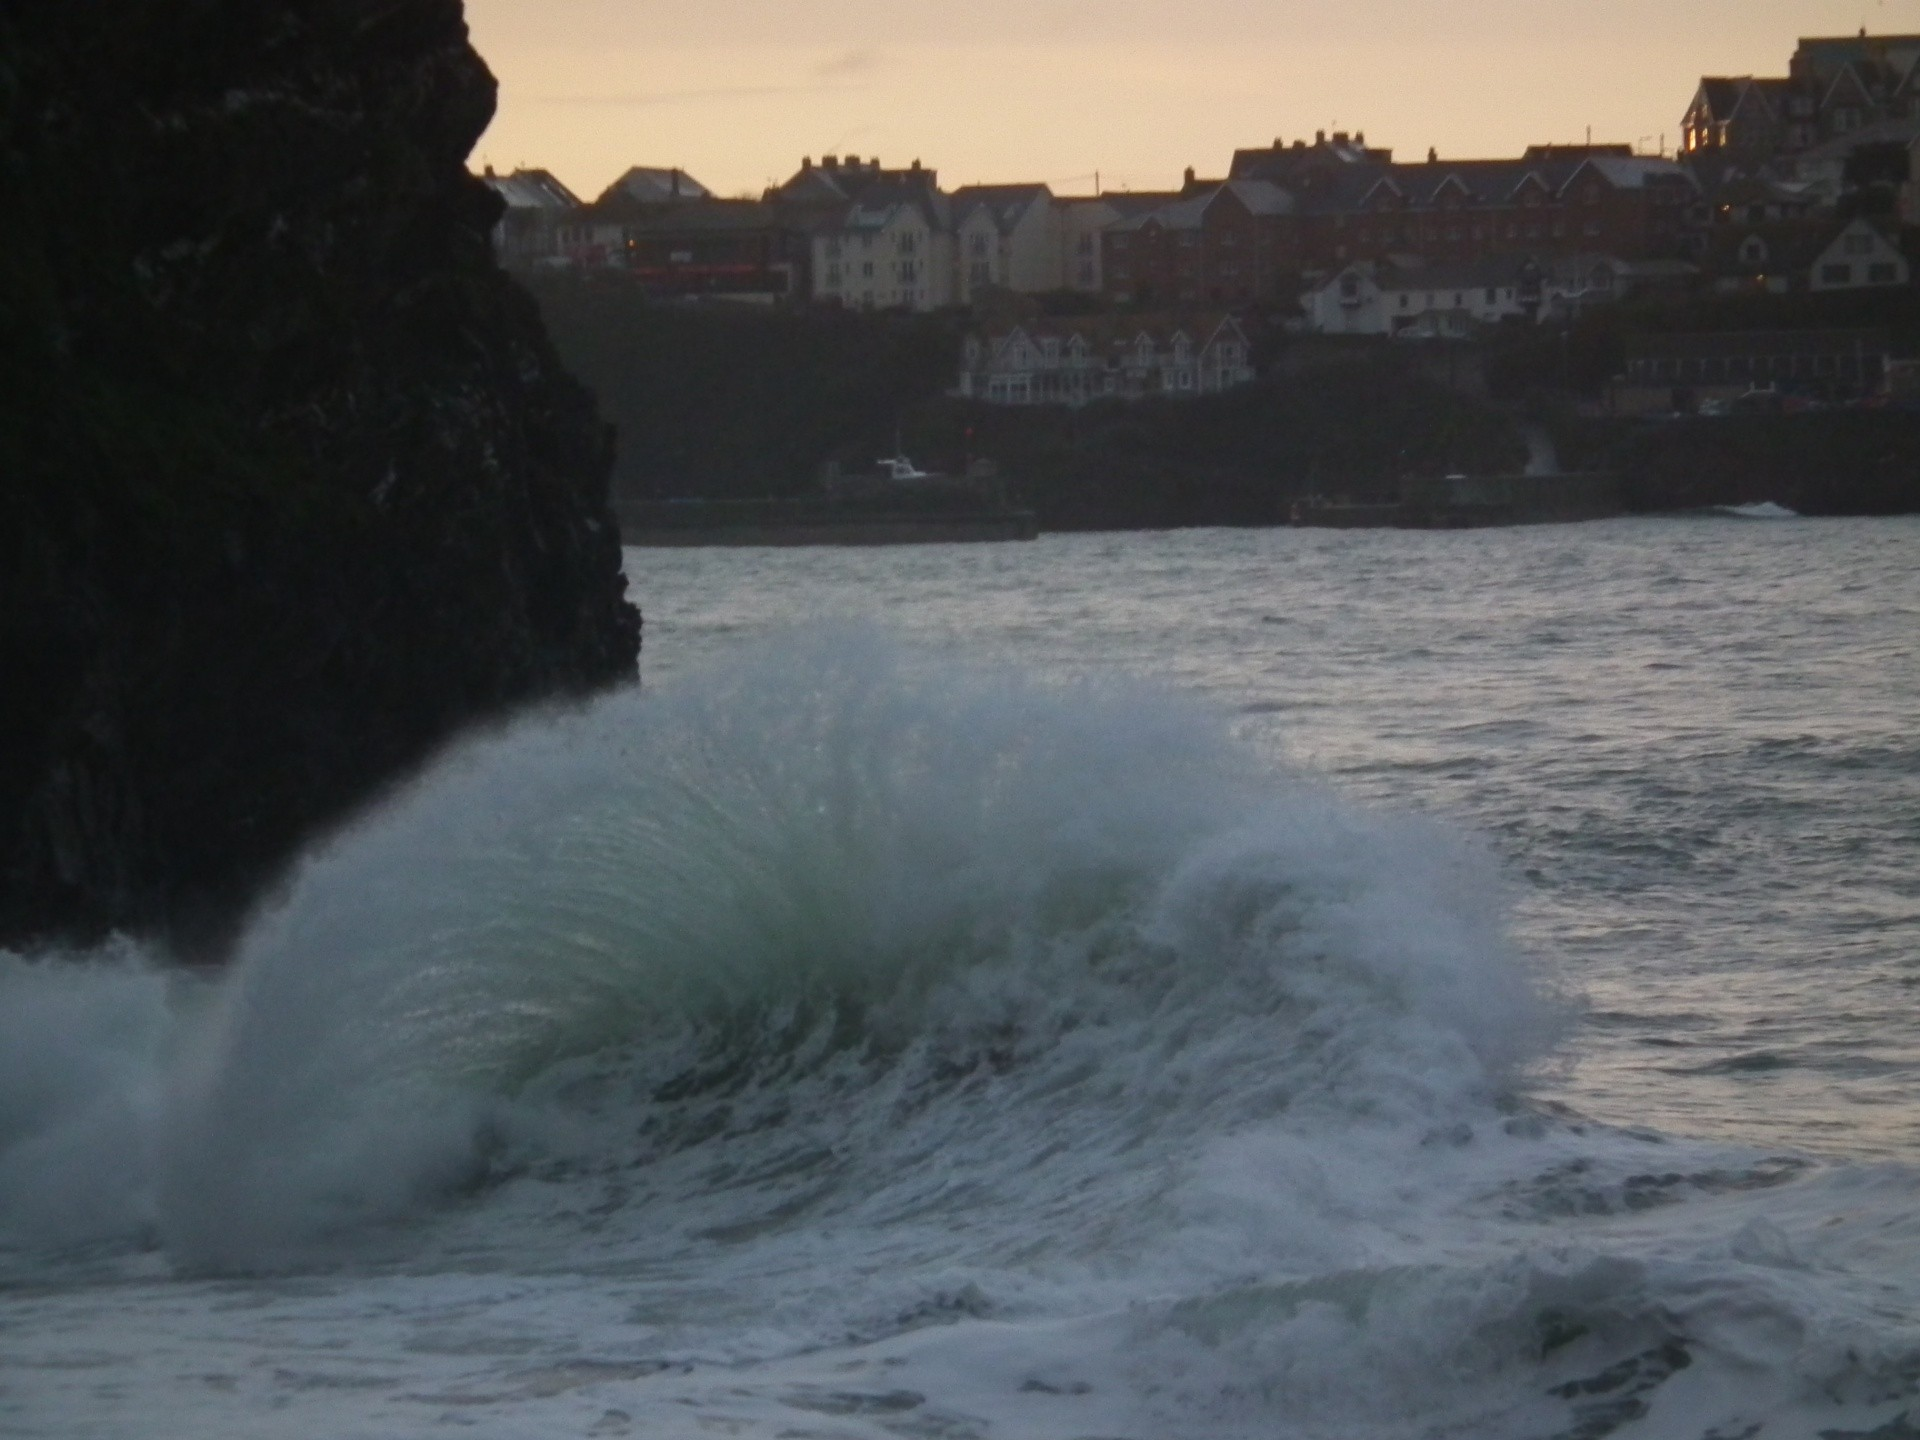 HarryLowery's photo of Newquay - Tolcarne Wedge